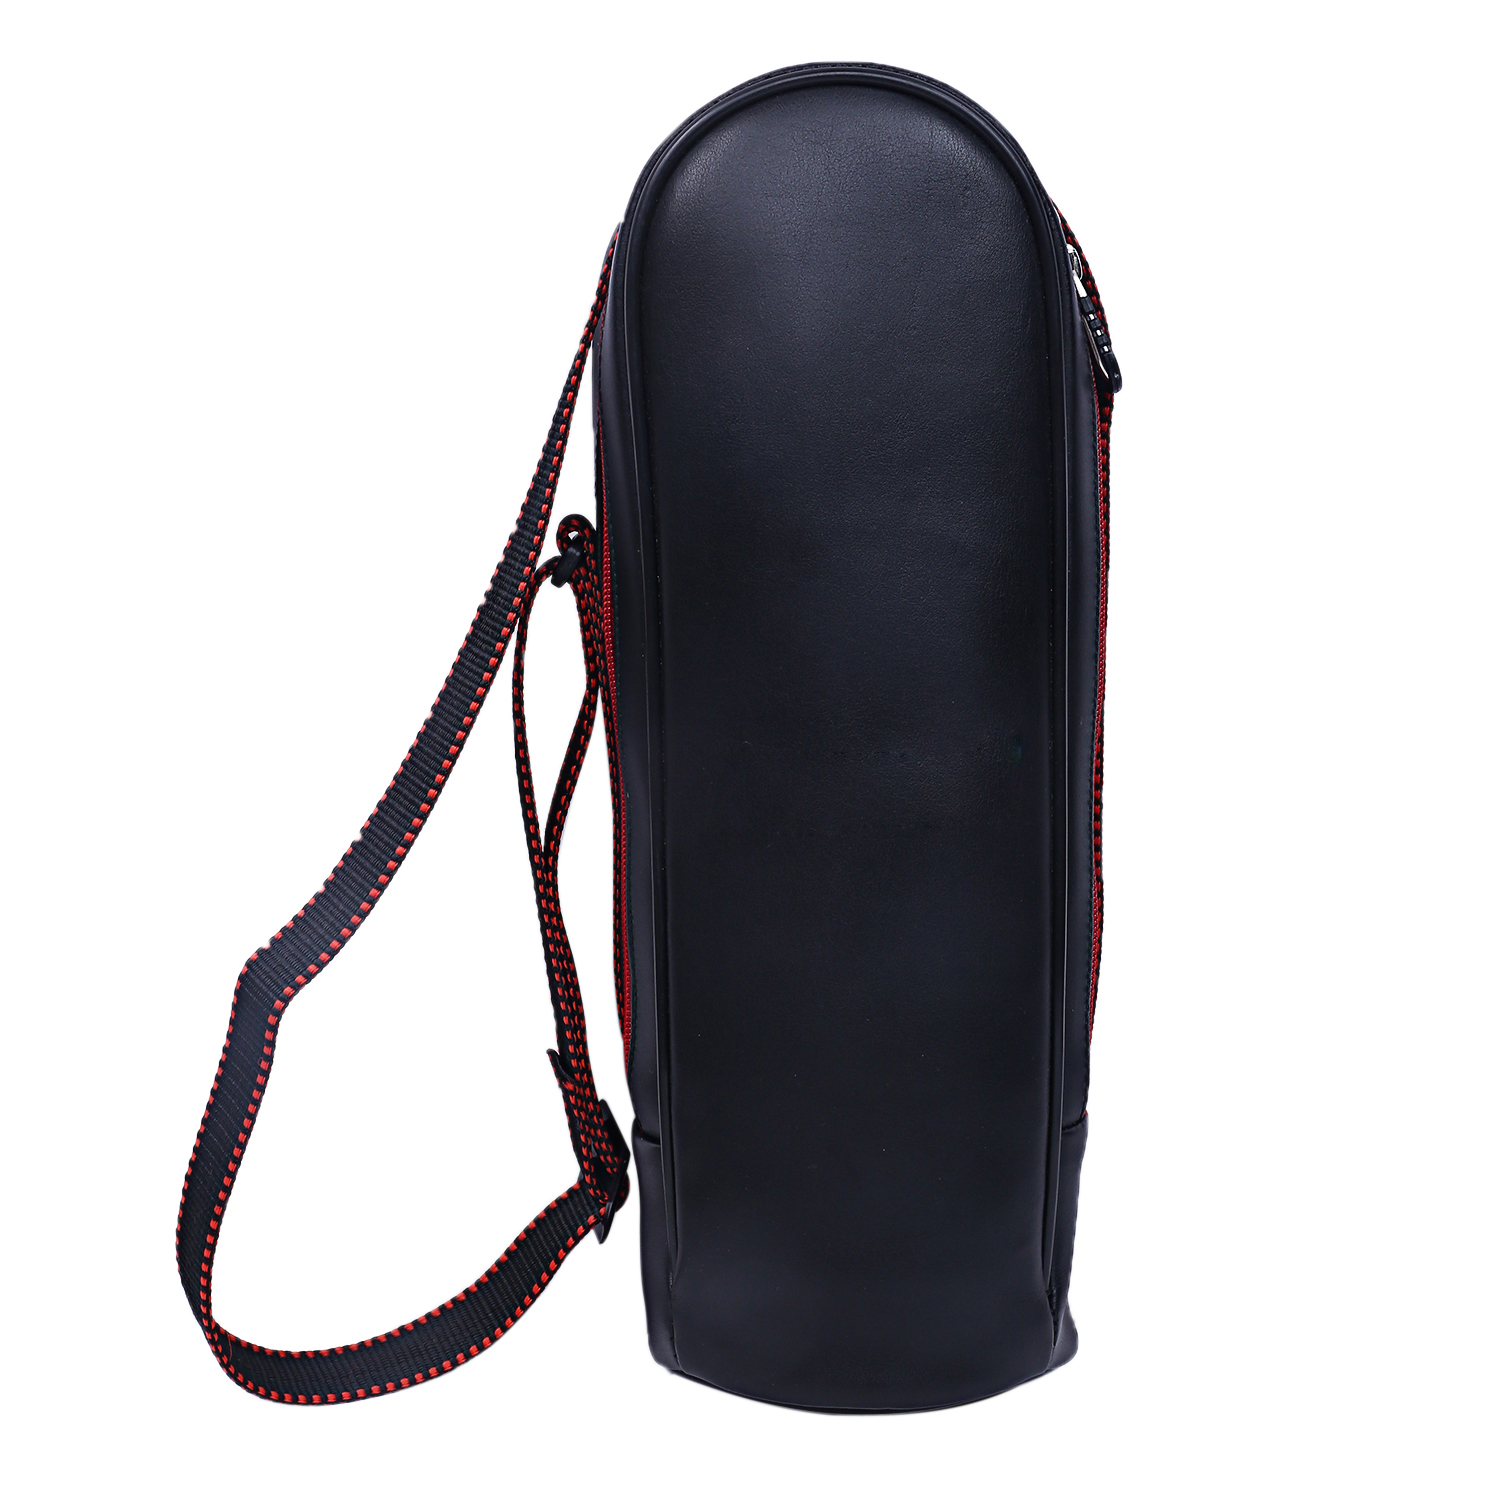 Kuber Industries Soft Leather Water Bottle Bag, Black, 2 LTR  -CTKTC21260